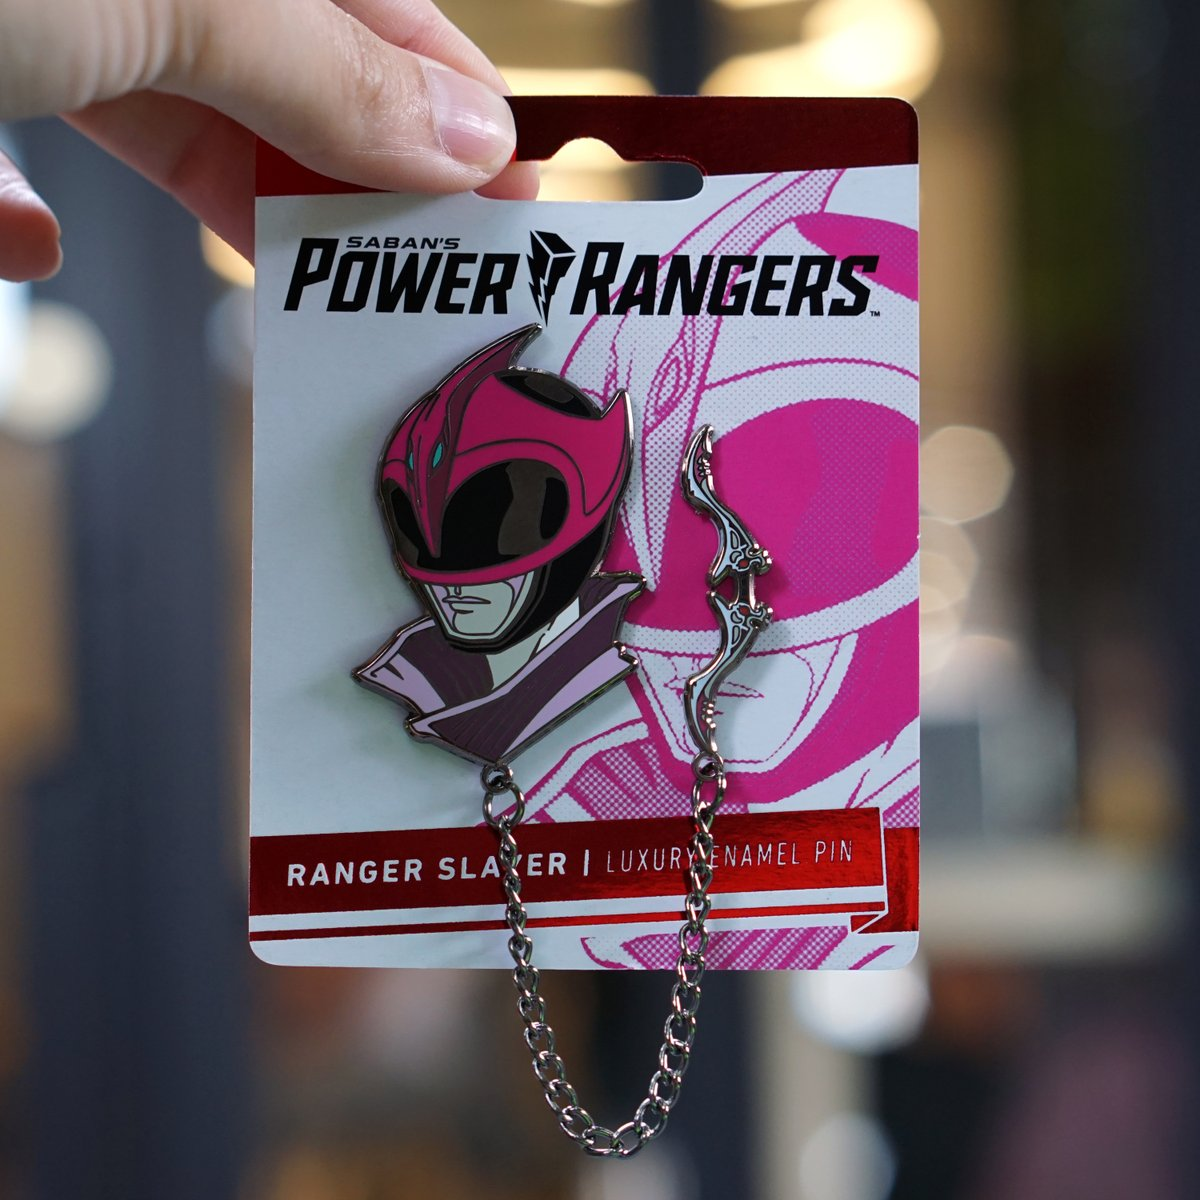 #PowerRangers GIVEAWAY (No.2)⚡  This Giveaway: Ranger Slayer from Shattered Grid — an officially licensed Hard-Enamel Lapel Pin.   HOW TO ENTER:  1️⃣ Follow @LineageNYC & @razzle1337 2️⃣ Like + Retweet 📅 Ends Friday, Aug 7th @ 11:59 PM EST   Good luck everyone!  https://t.co/obNCTJ6HMQ